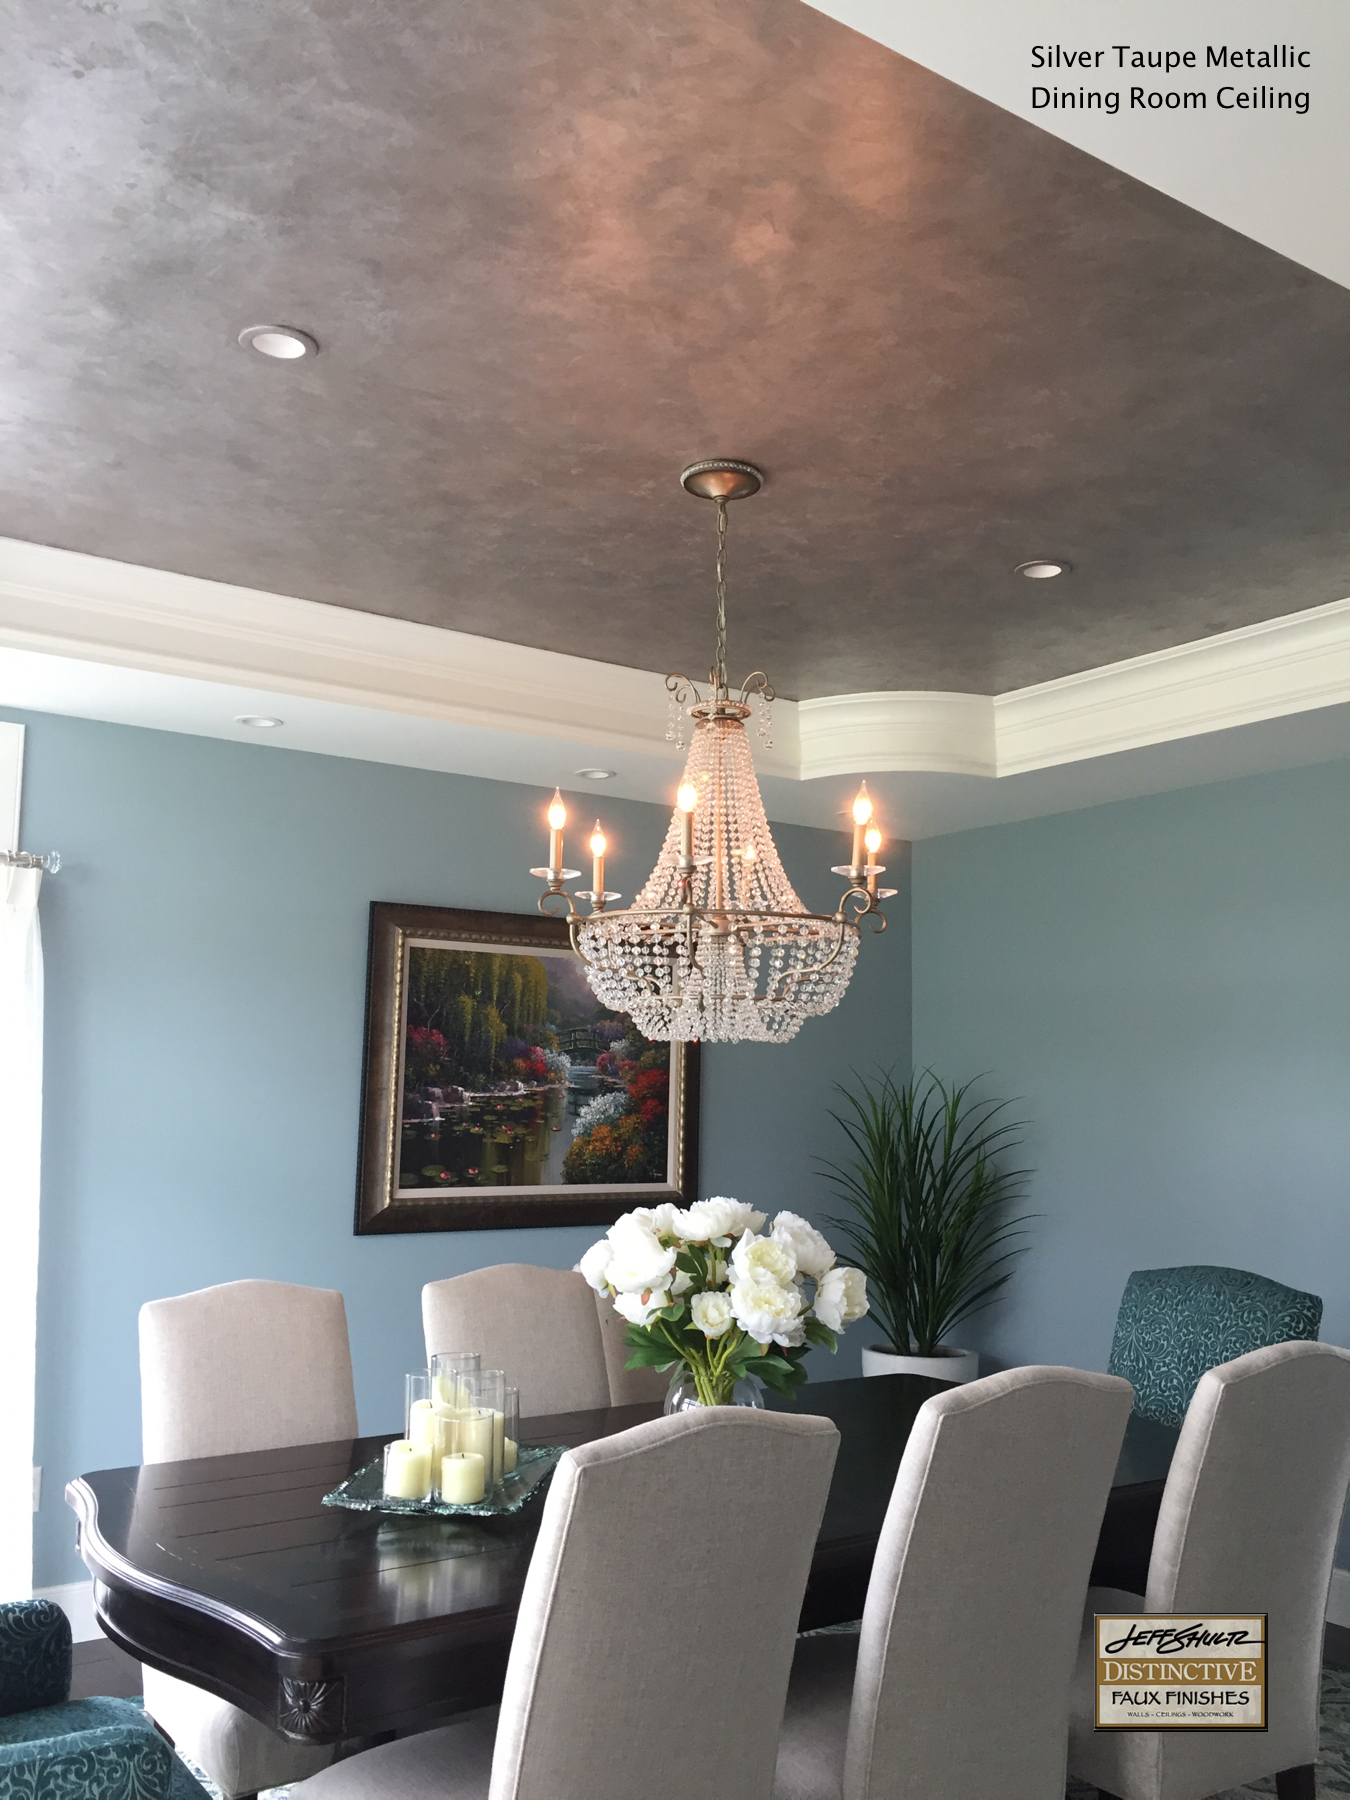 Smucker Silver Taupe Metallic Ceiling copy.jpg